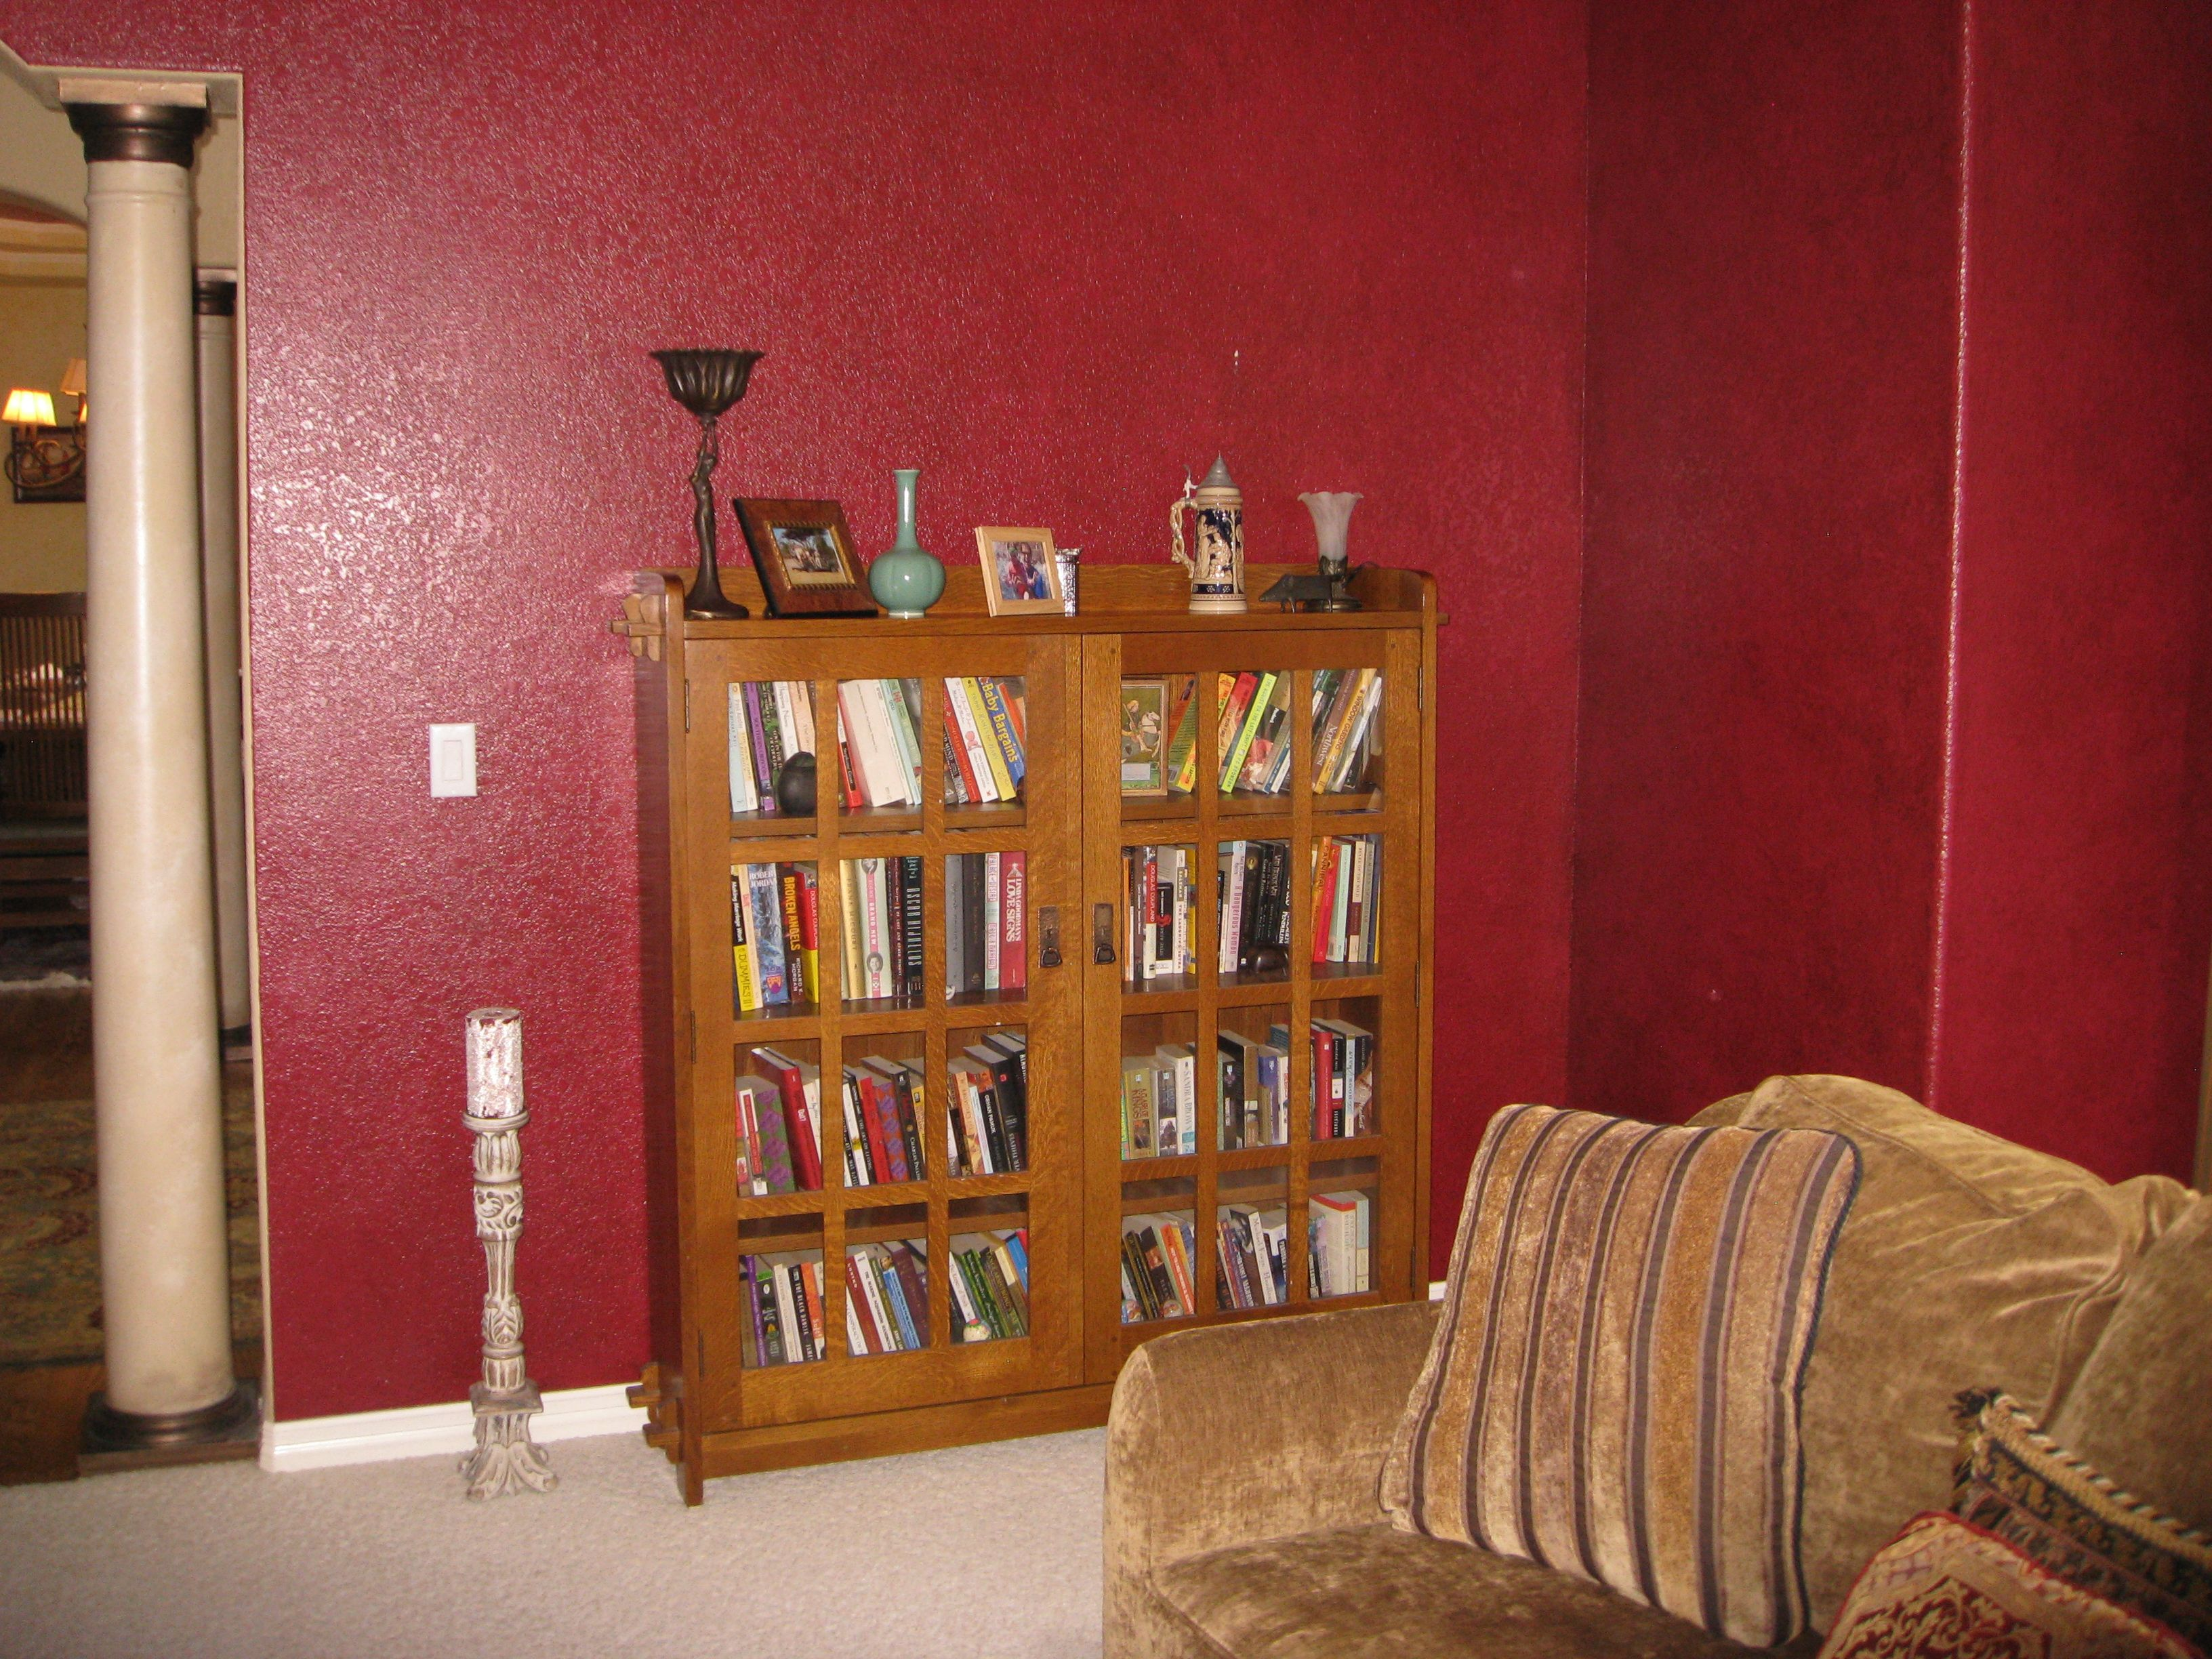 Living Room Before This Corner Is Now Filled With An Asian Screen And Art Home Remodeling Home Decor Home